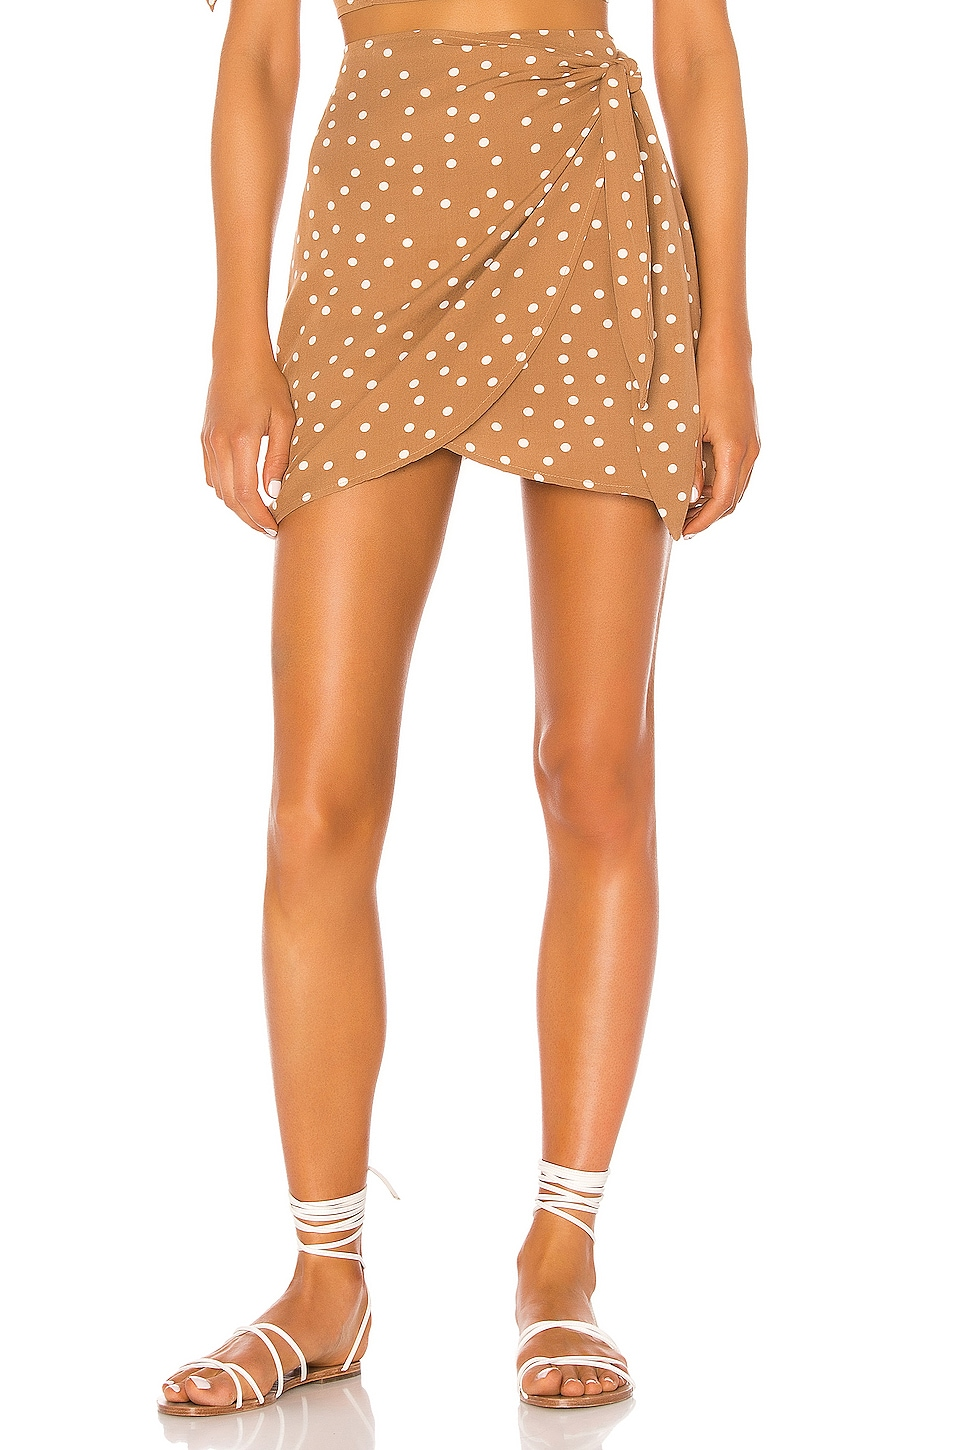 L*SPACE Lanie Skirt in Beachcomber Dot